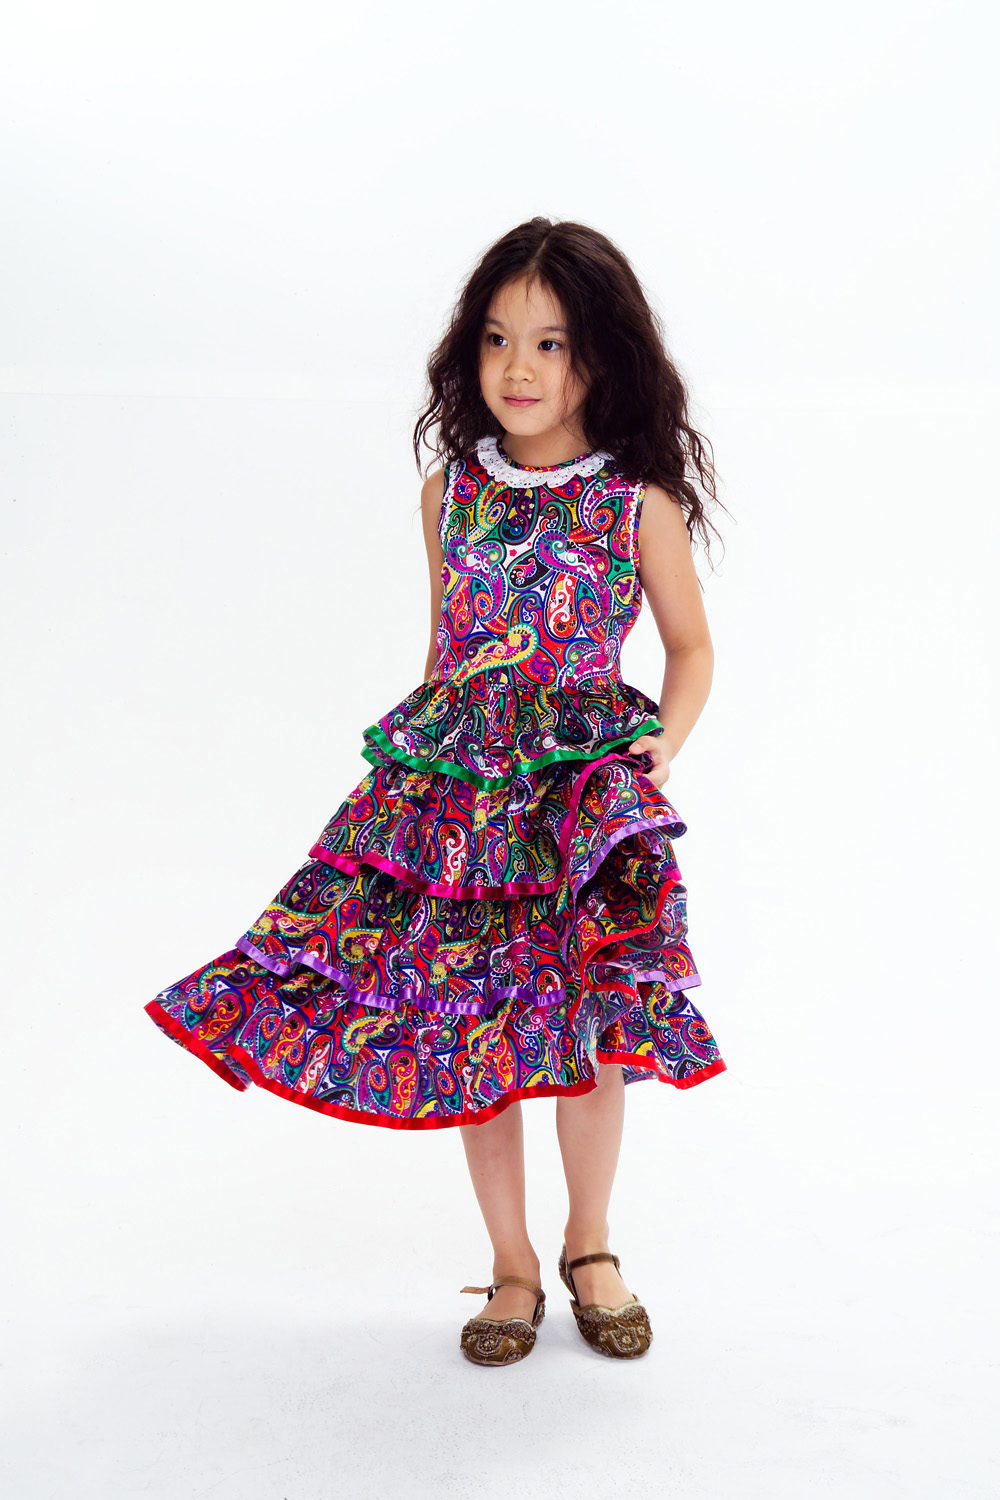 poesia 2006 childrens wear thatsitmag5.jpg